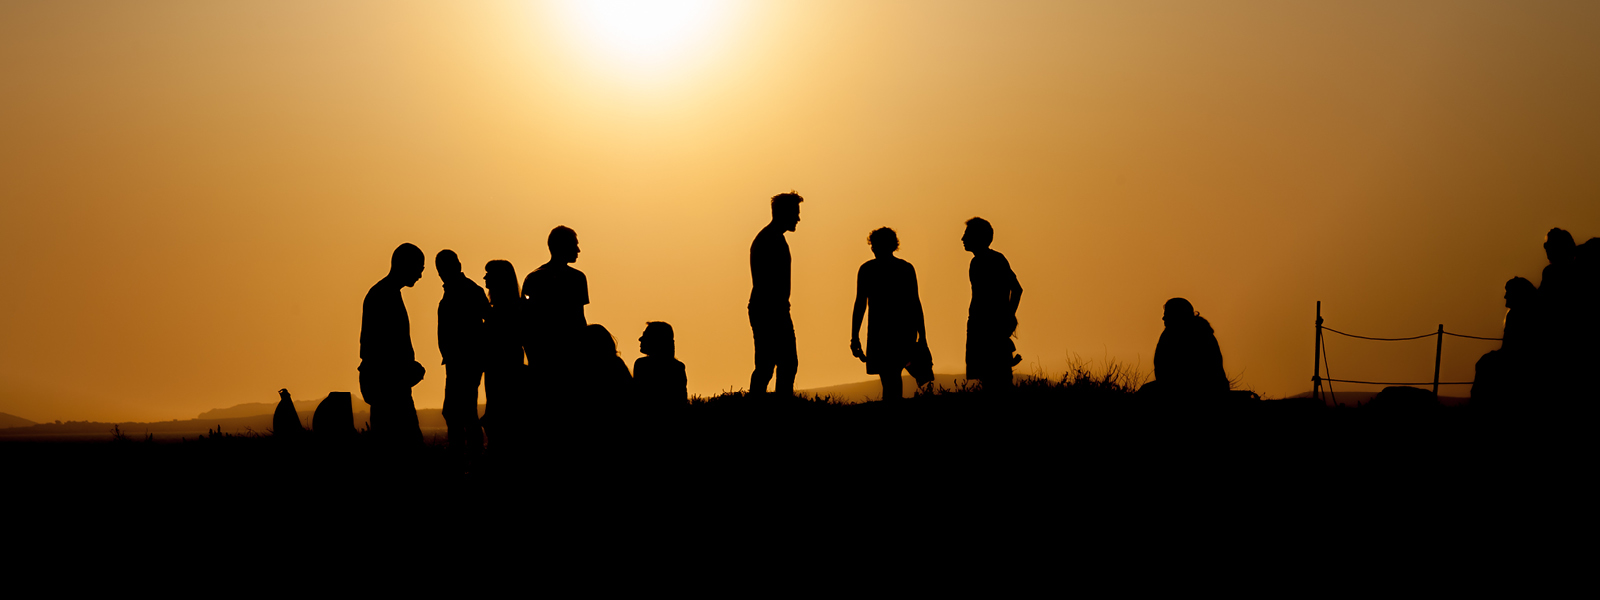 Silhouette of a group of people with a sunset in the background